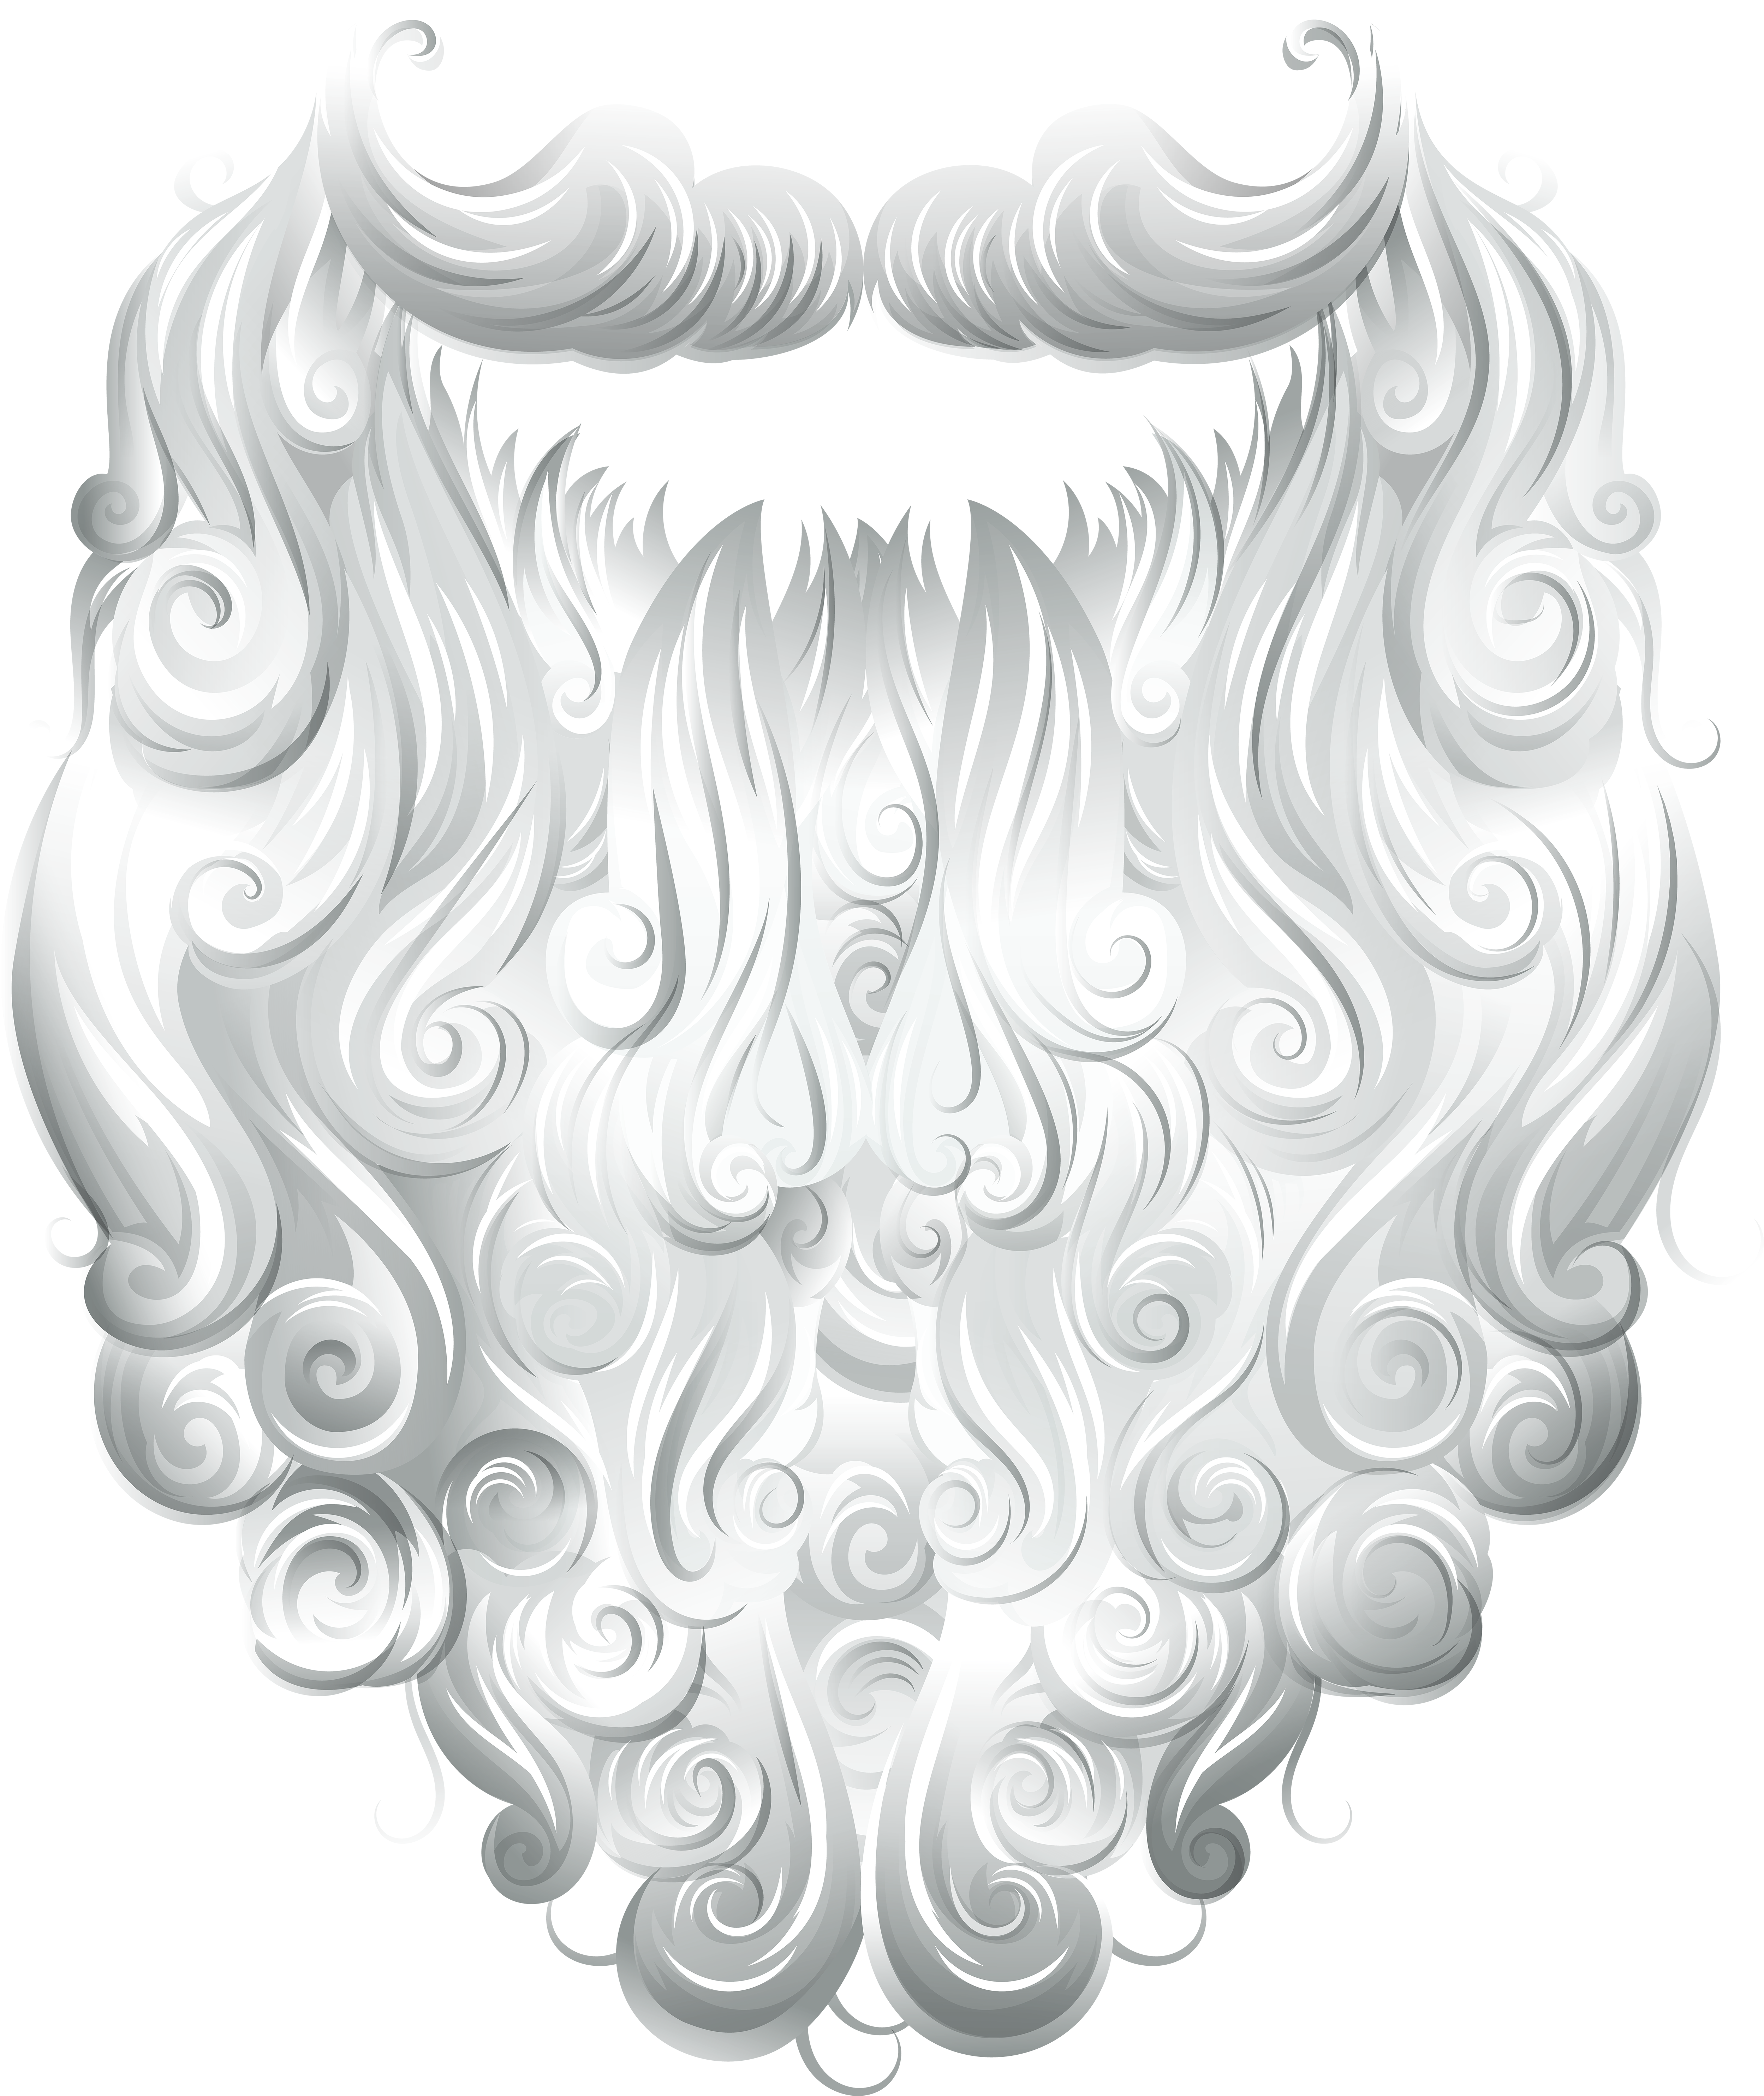 Light beard clipart banner royalty free stock Beard Clipart Santa Claus - Clip Art Library banner royalty free stock